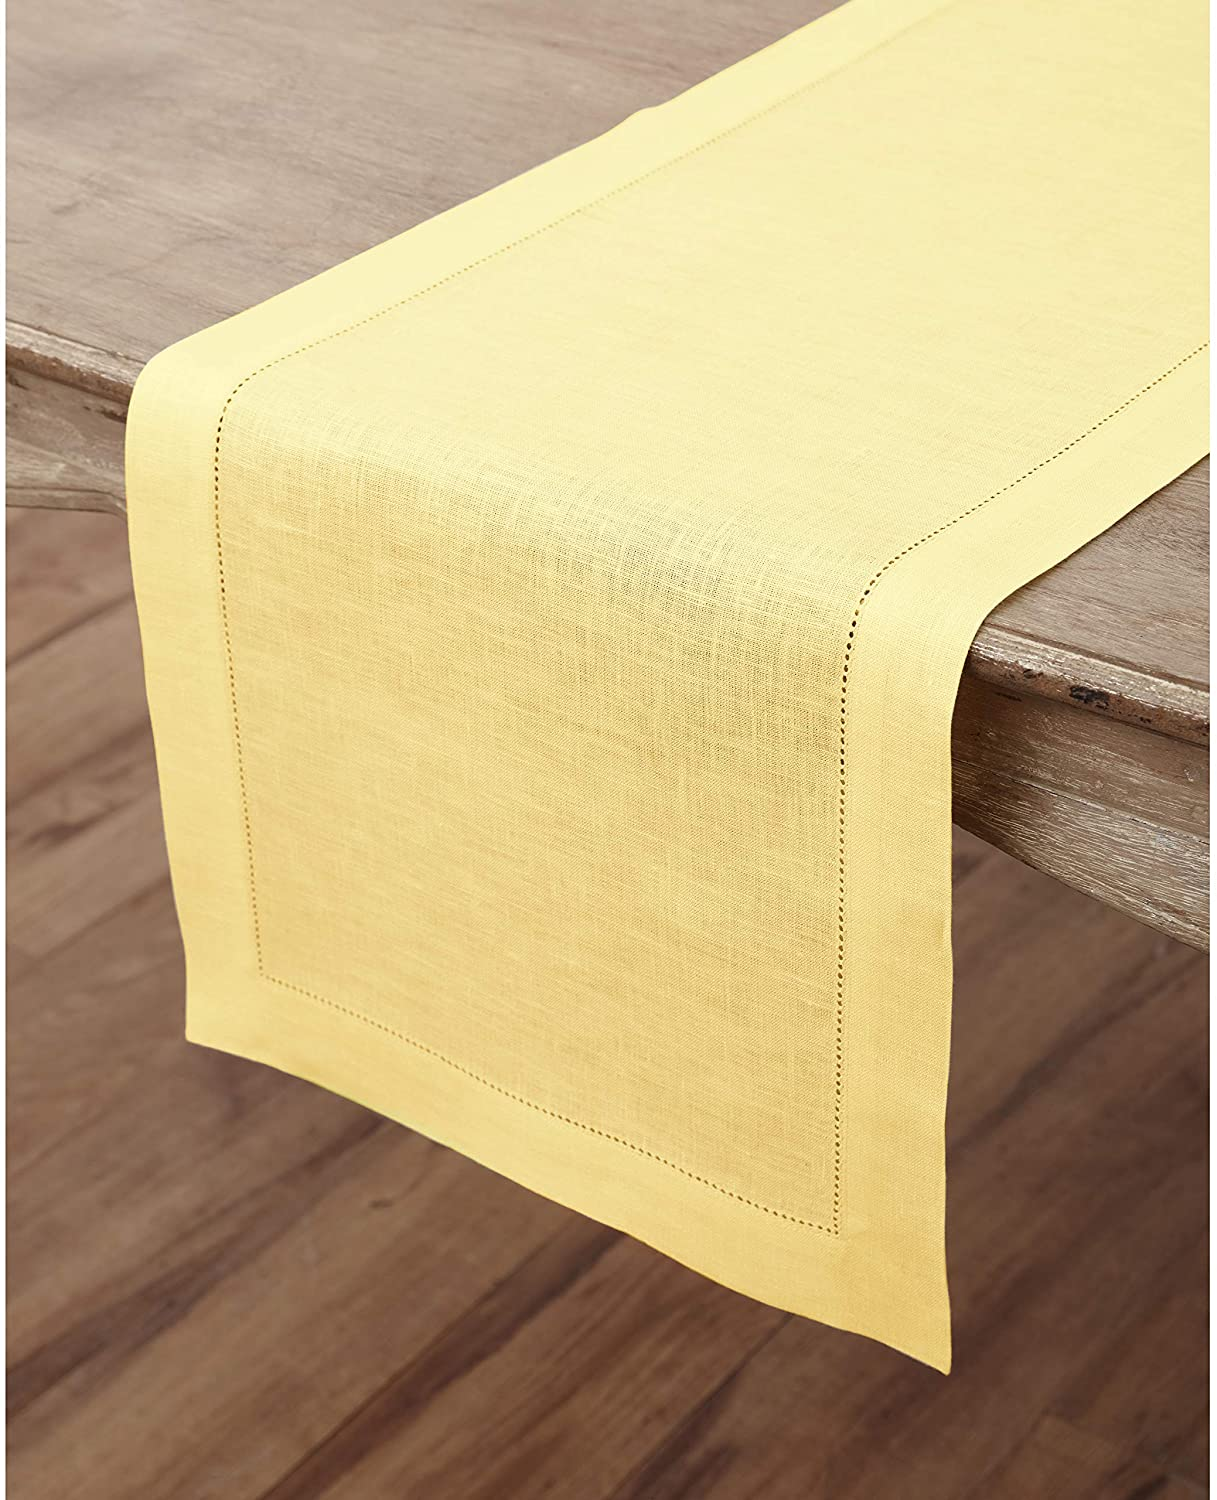 Solino Home 100% Pure Linen Hemstitch Table Runner - 14 x 72 Inch, Handcrafted from European Flax, Machine Washable Classic Hemstitch - Yellow